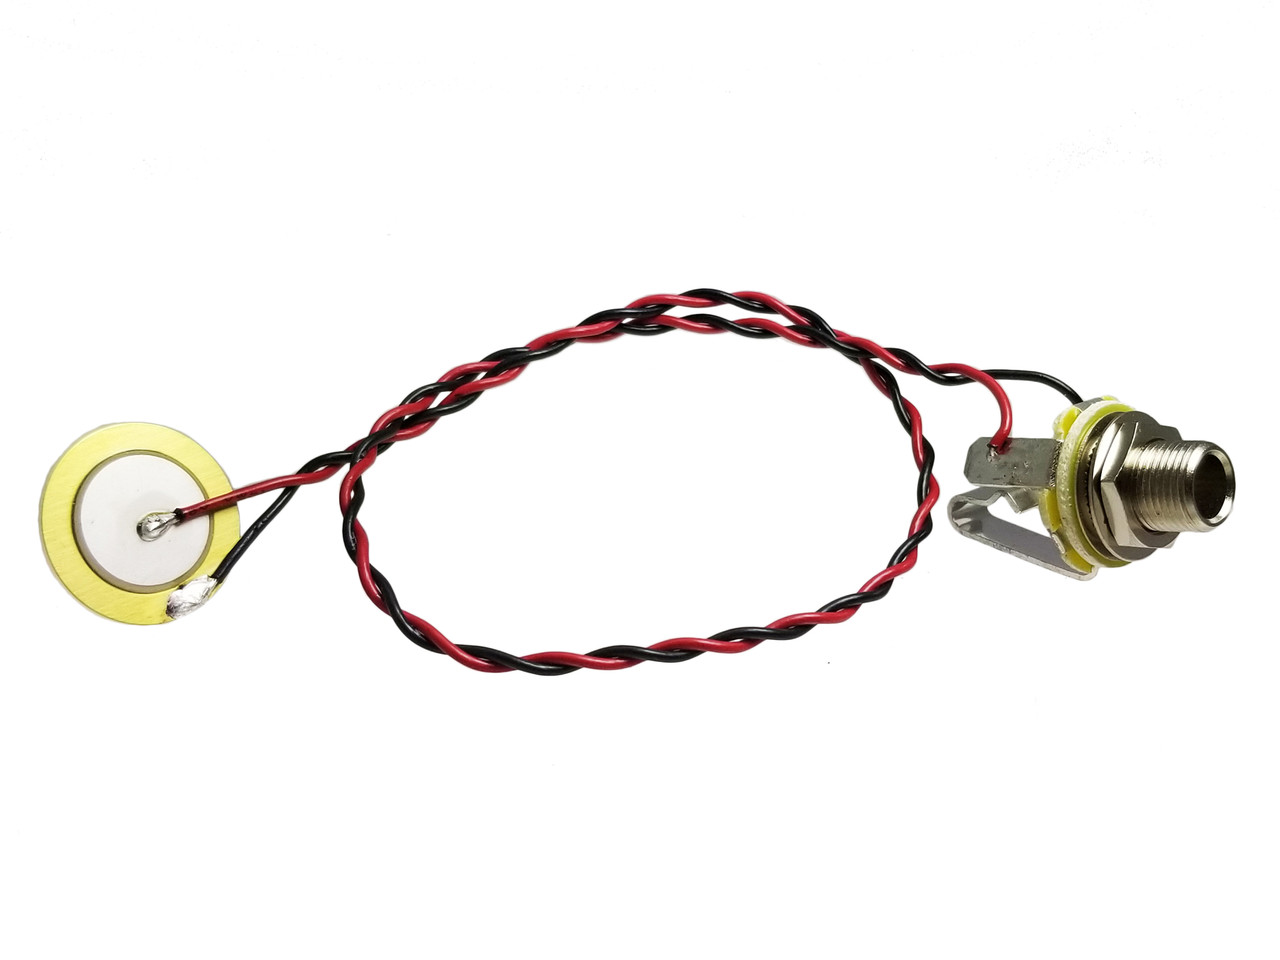 medium resolution of basic pre wired piezo jack harness with shielded cable c b gitty crafter supply